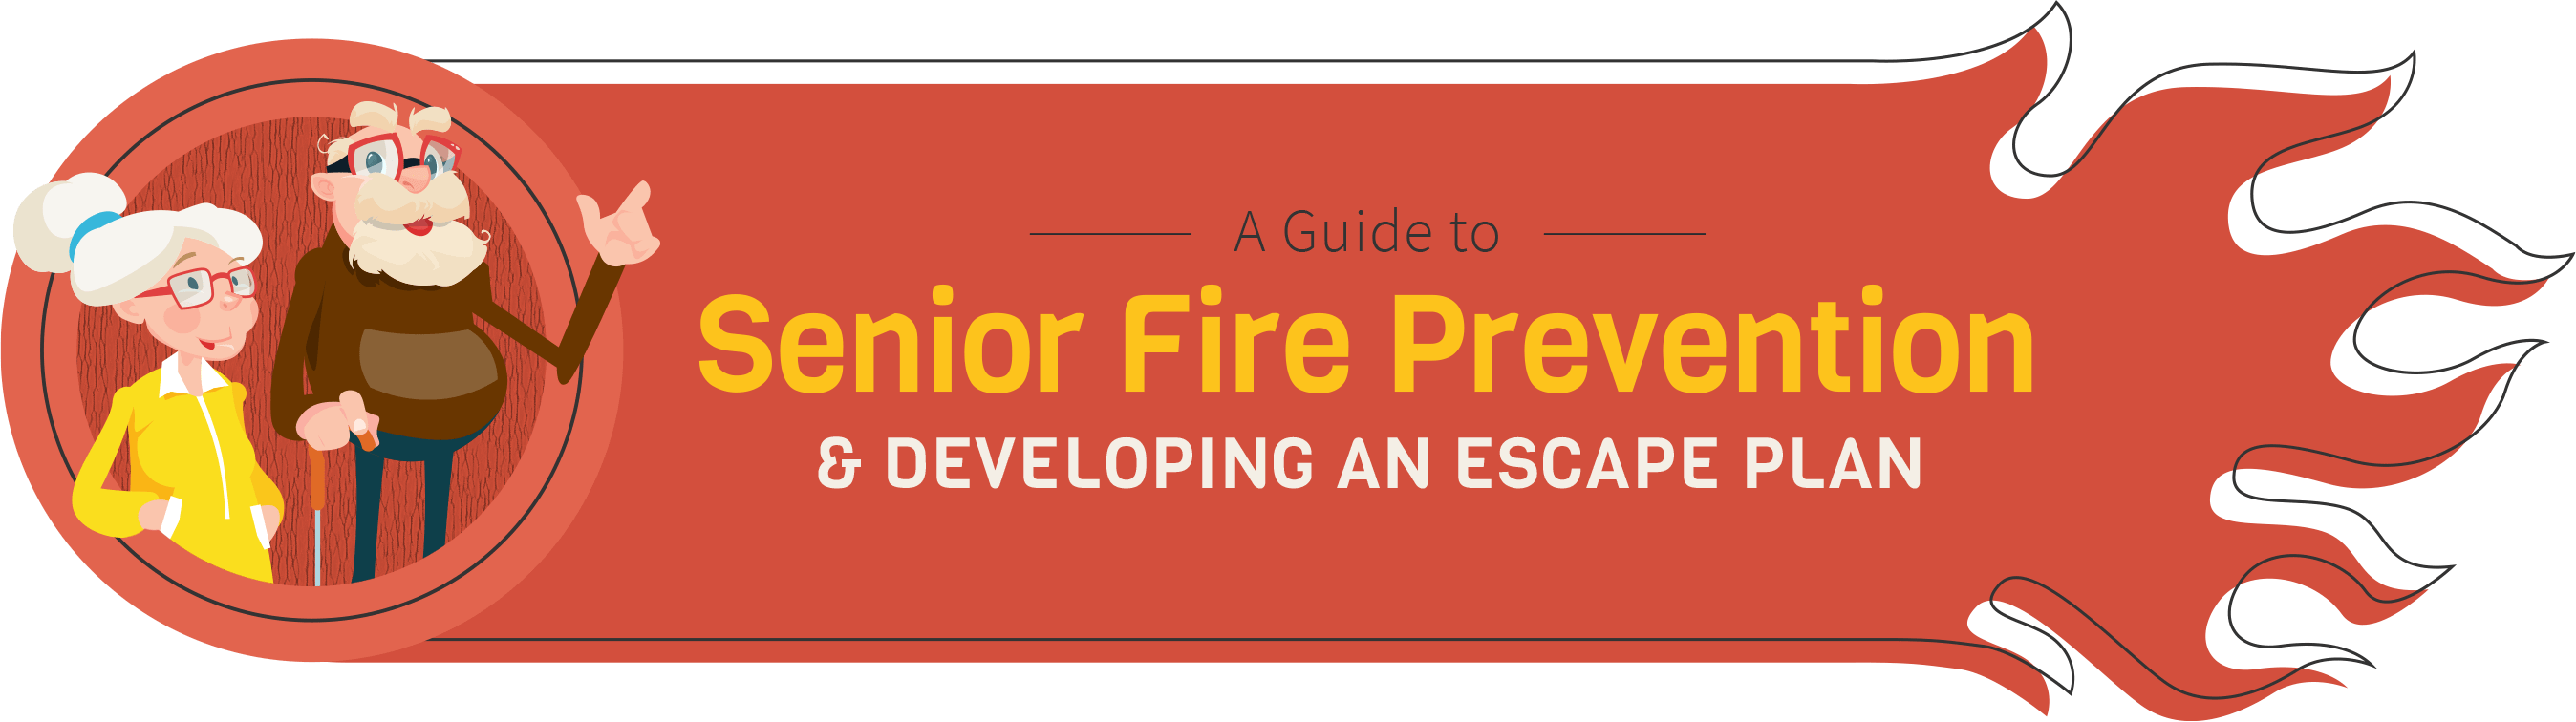 A Guide to Senior Fire Prevention & Developing and Escape Plan